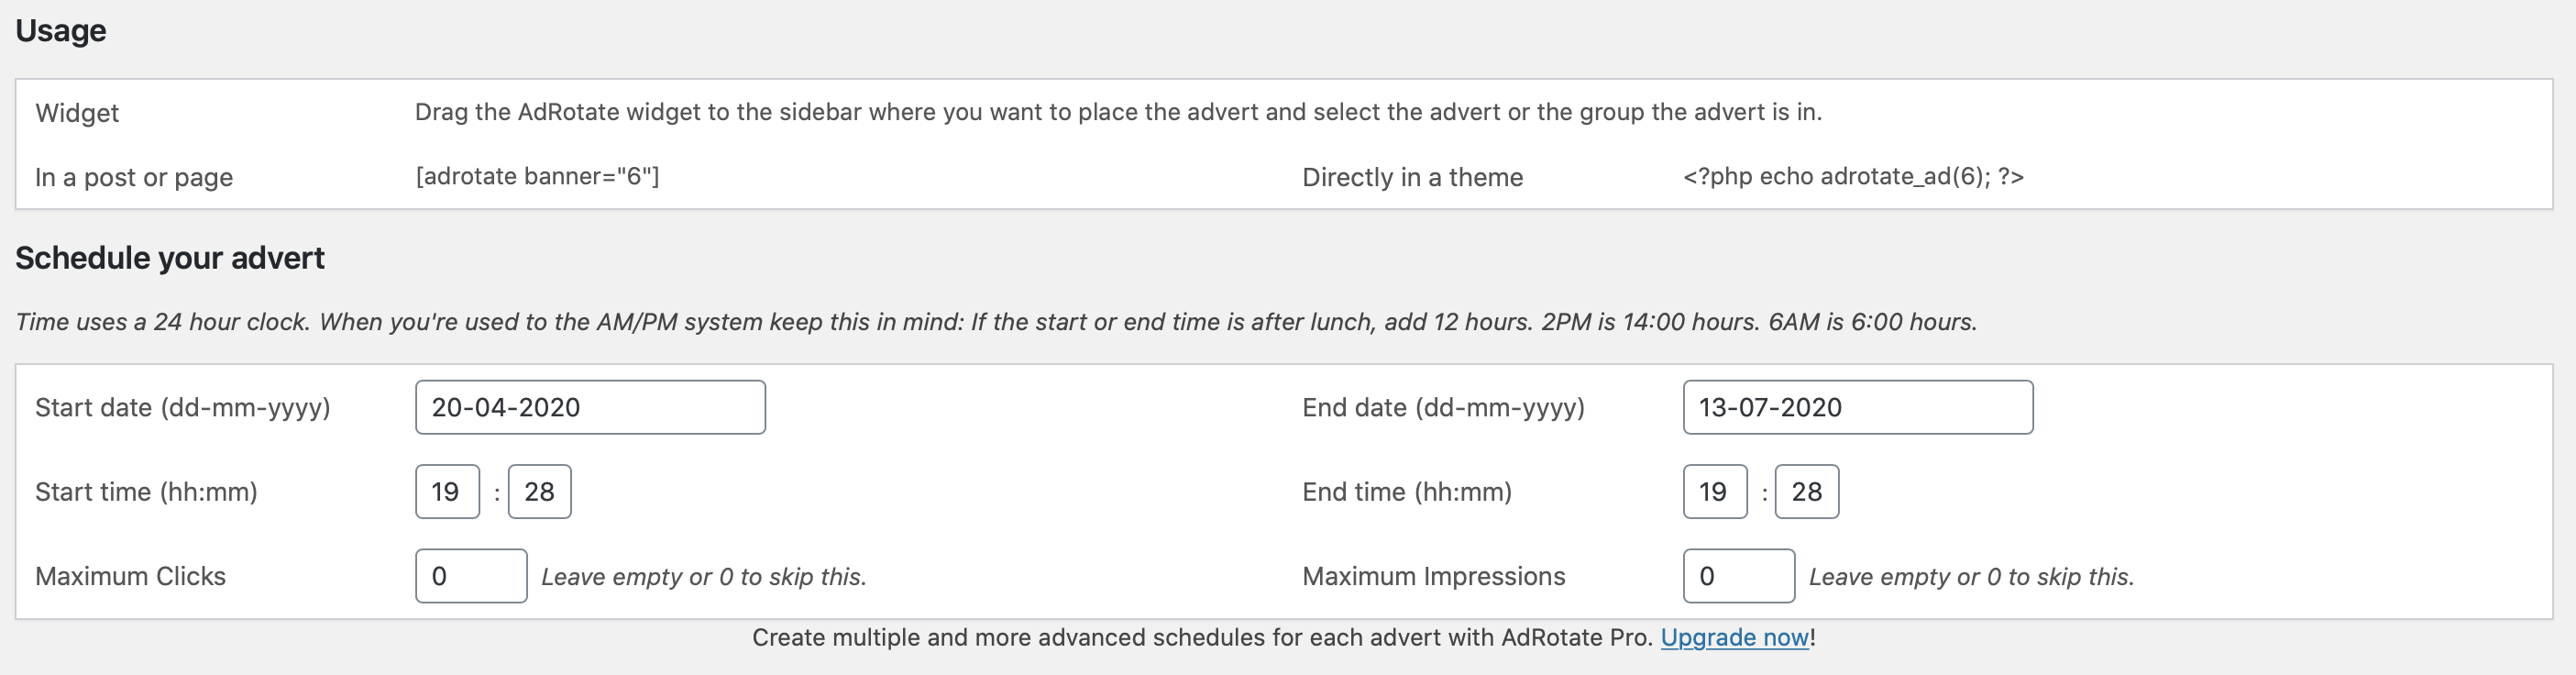 Schedule you advert to the minute with AdRotate